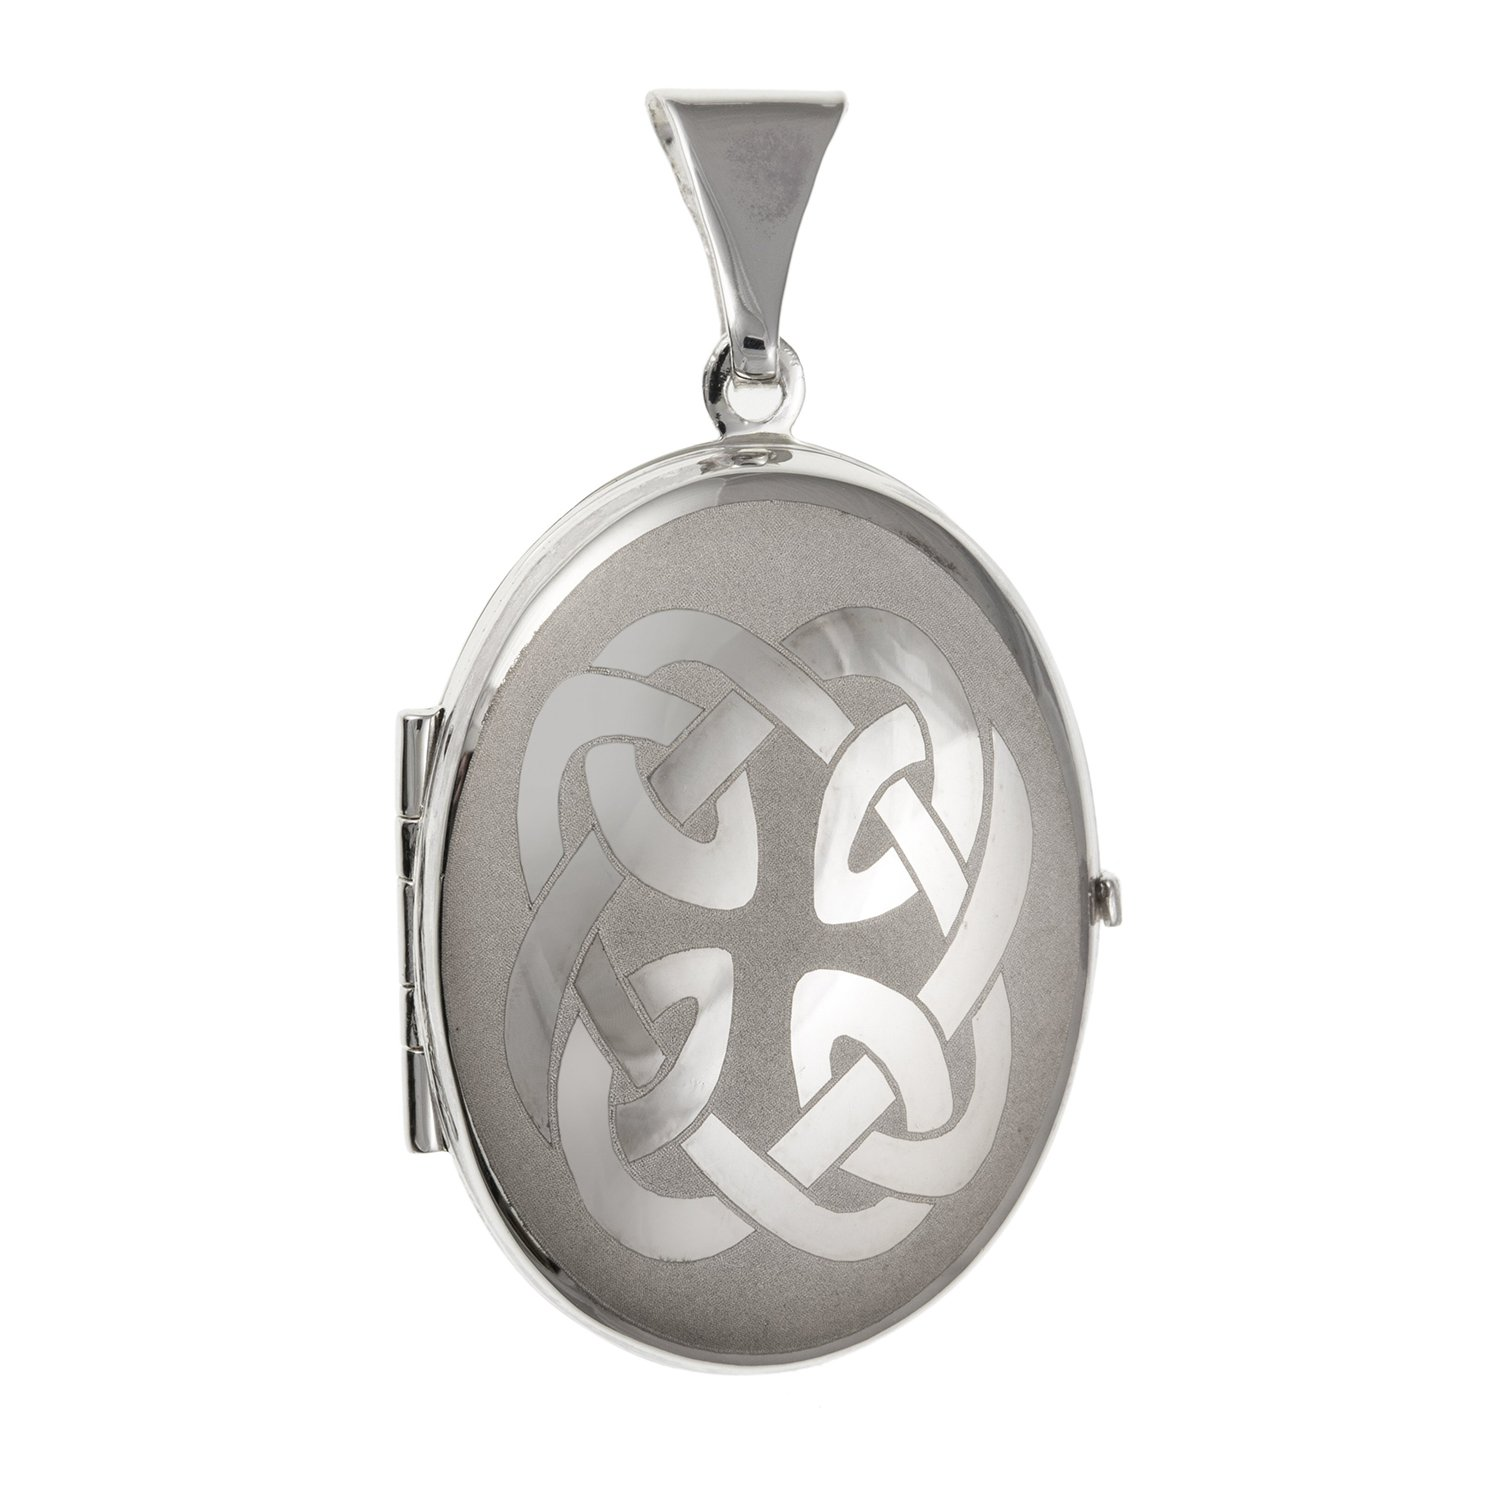 20MM Wide Irish Celtic Knot Family Oval Locket - 925 Sterling Silver - Supplied in Free Gift Box or Gift Bag M & M Jewellery BU2599ID-LL-LOCK